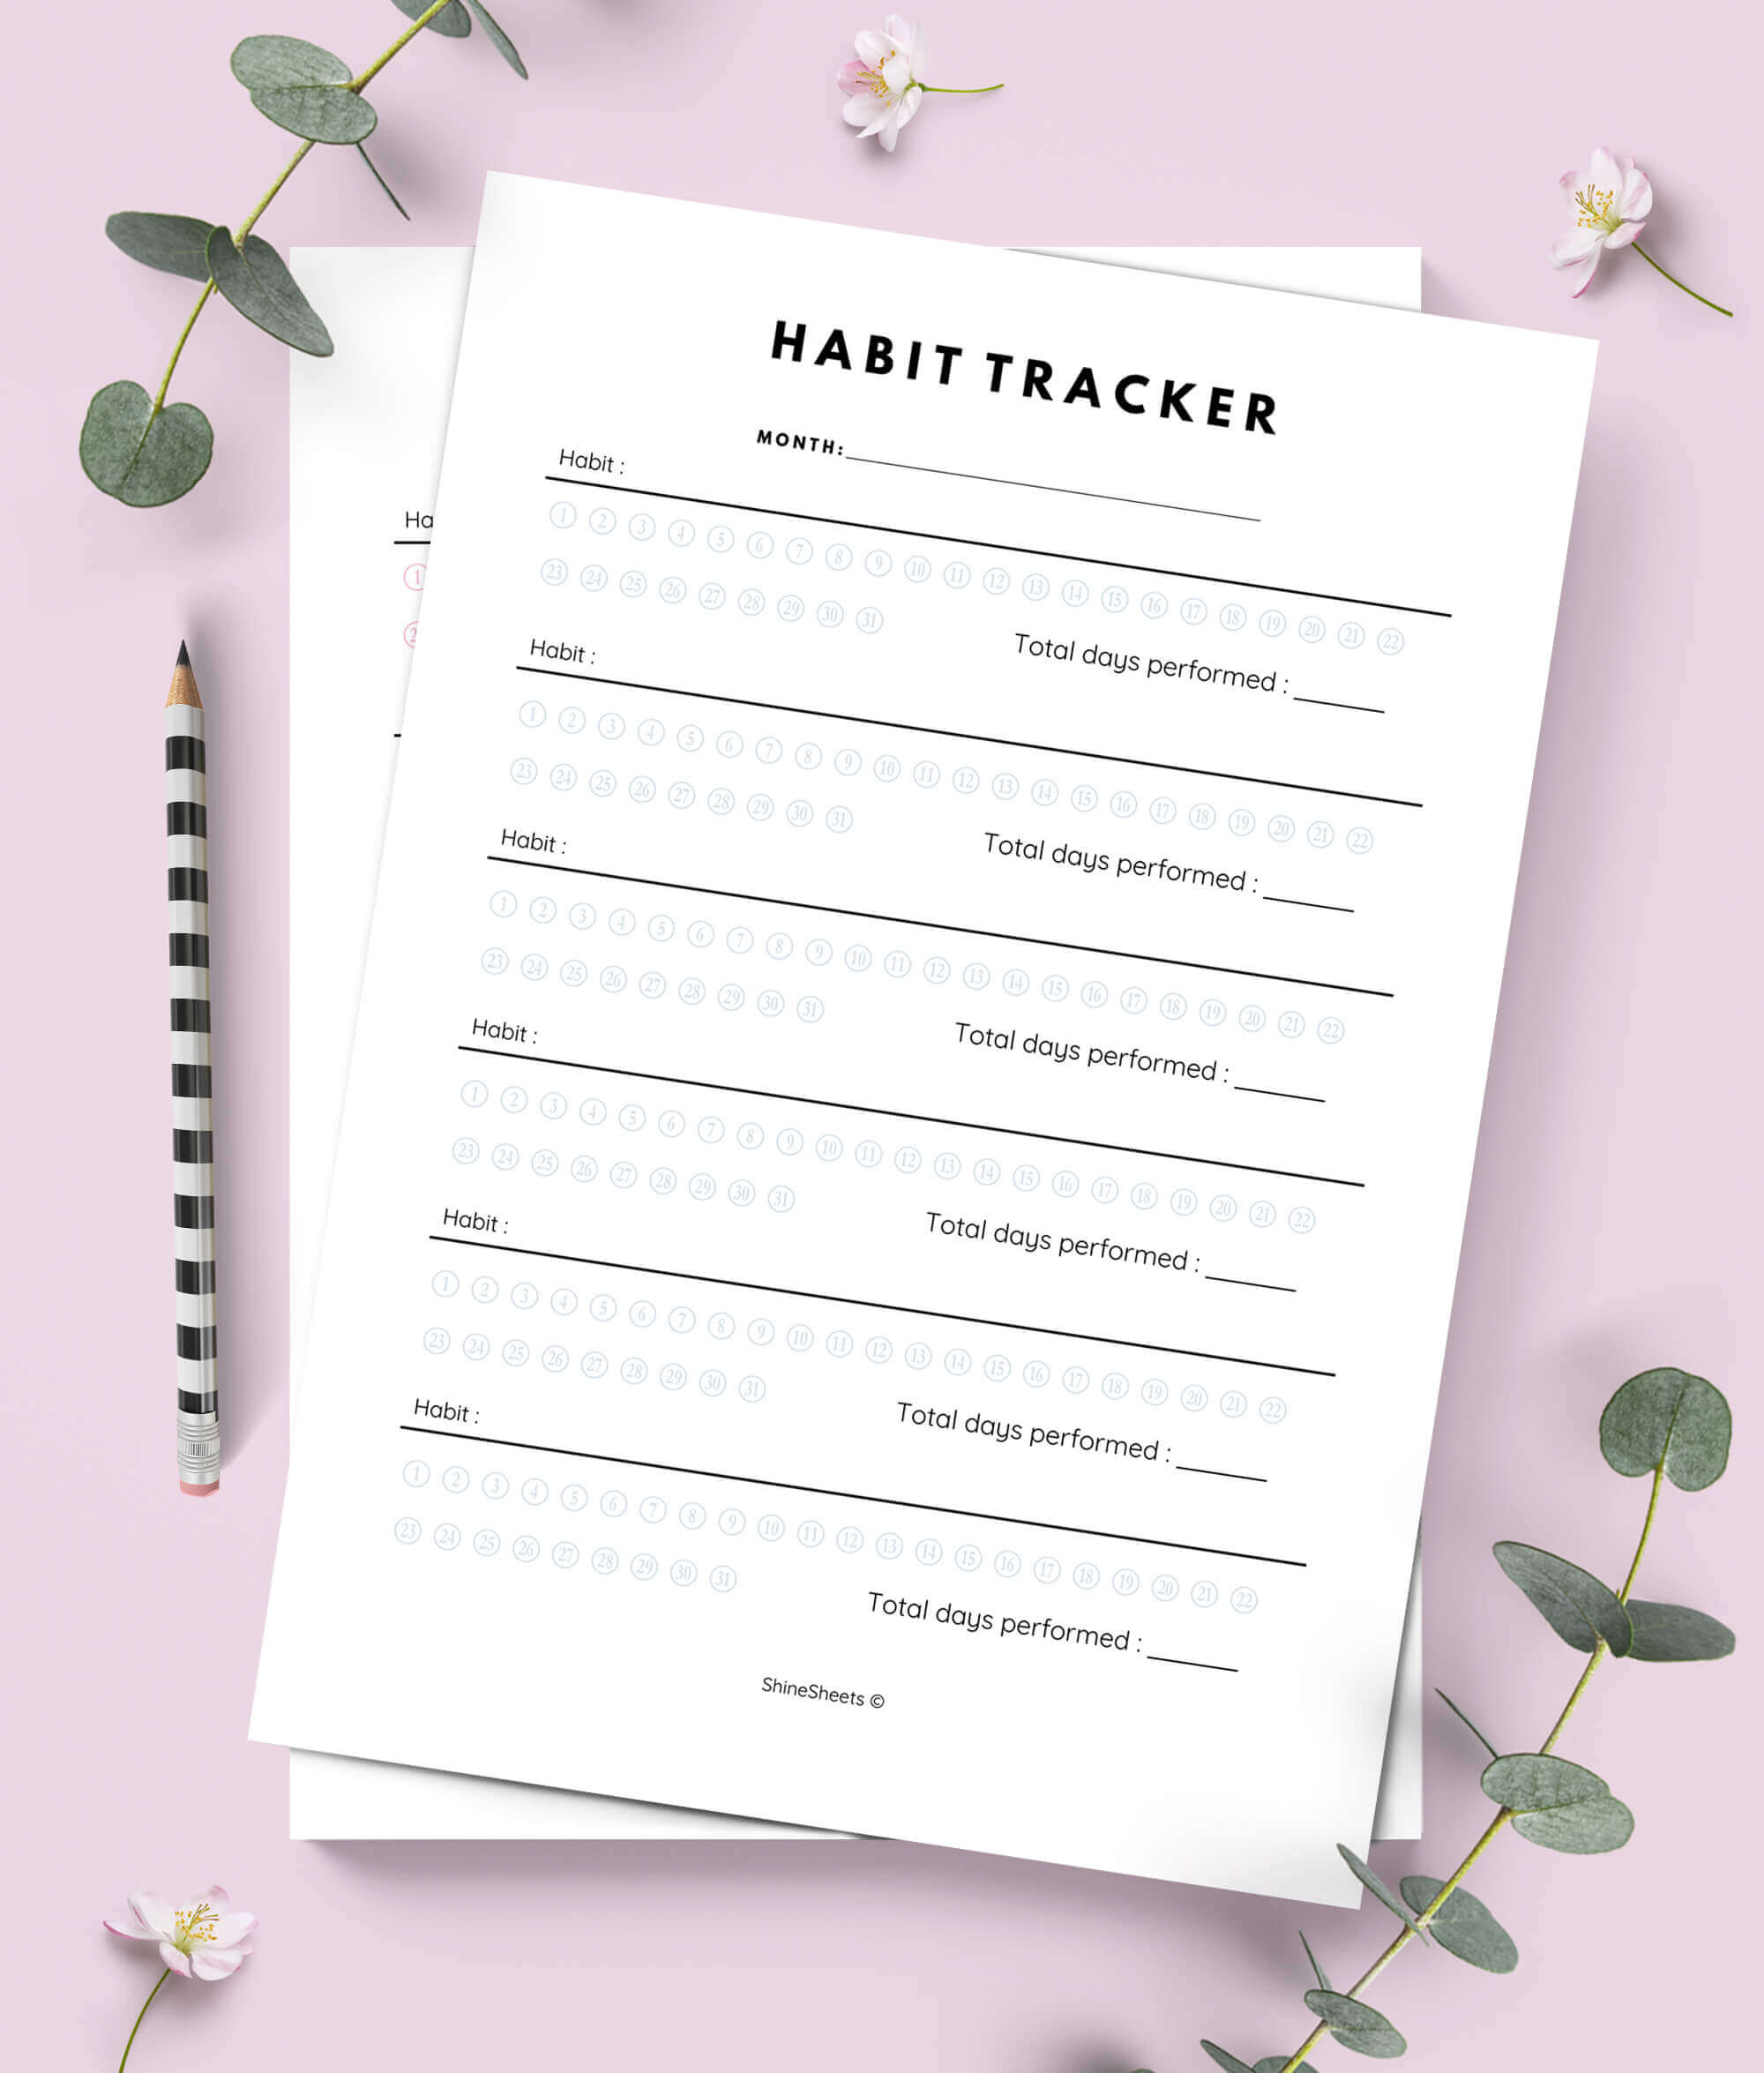 image relating to Habit Tracker Printable called Routine Tracker Printable